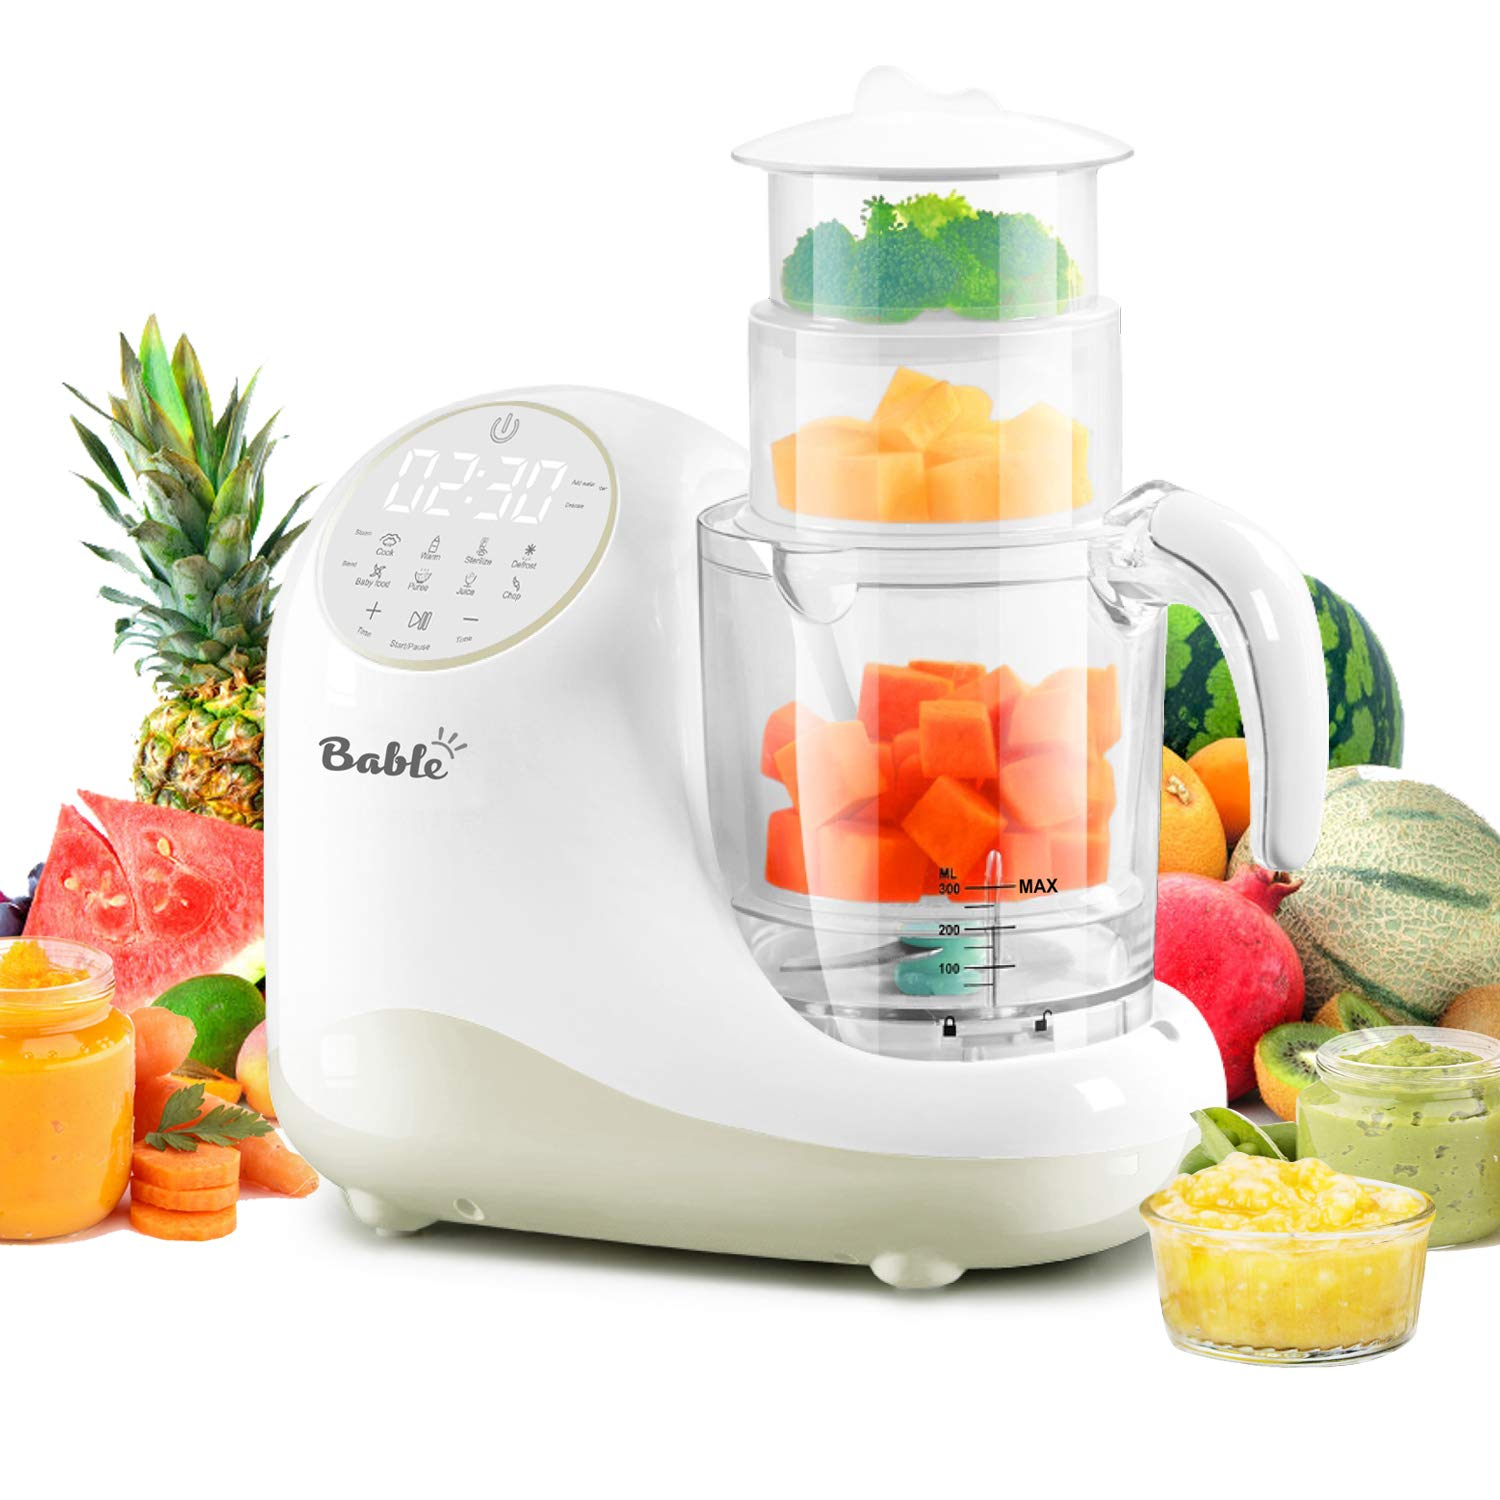 Baby Food Maker for Infants and Toddlers, Bable All-in-1 Food Processor Mills Machine with Steam, Blend, Chop, Sterilize, Warm Milk, Defrost, Grinder to Make Puree and Juice, Touch Control Panel, Auto by bable